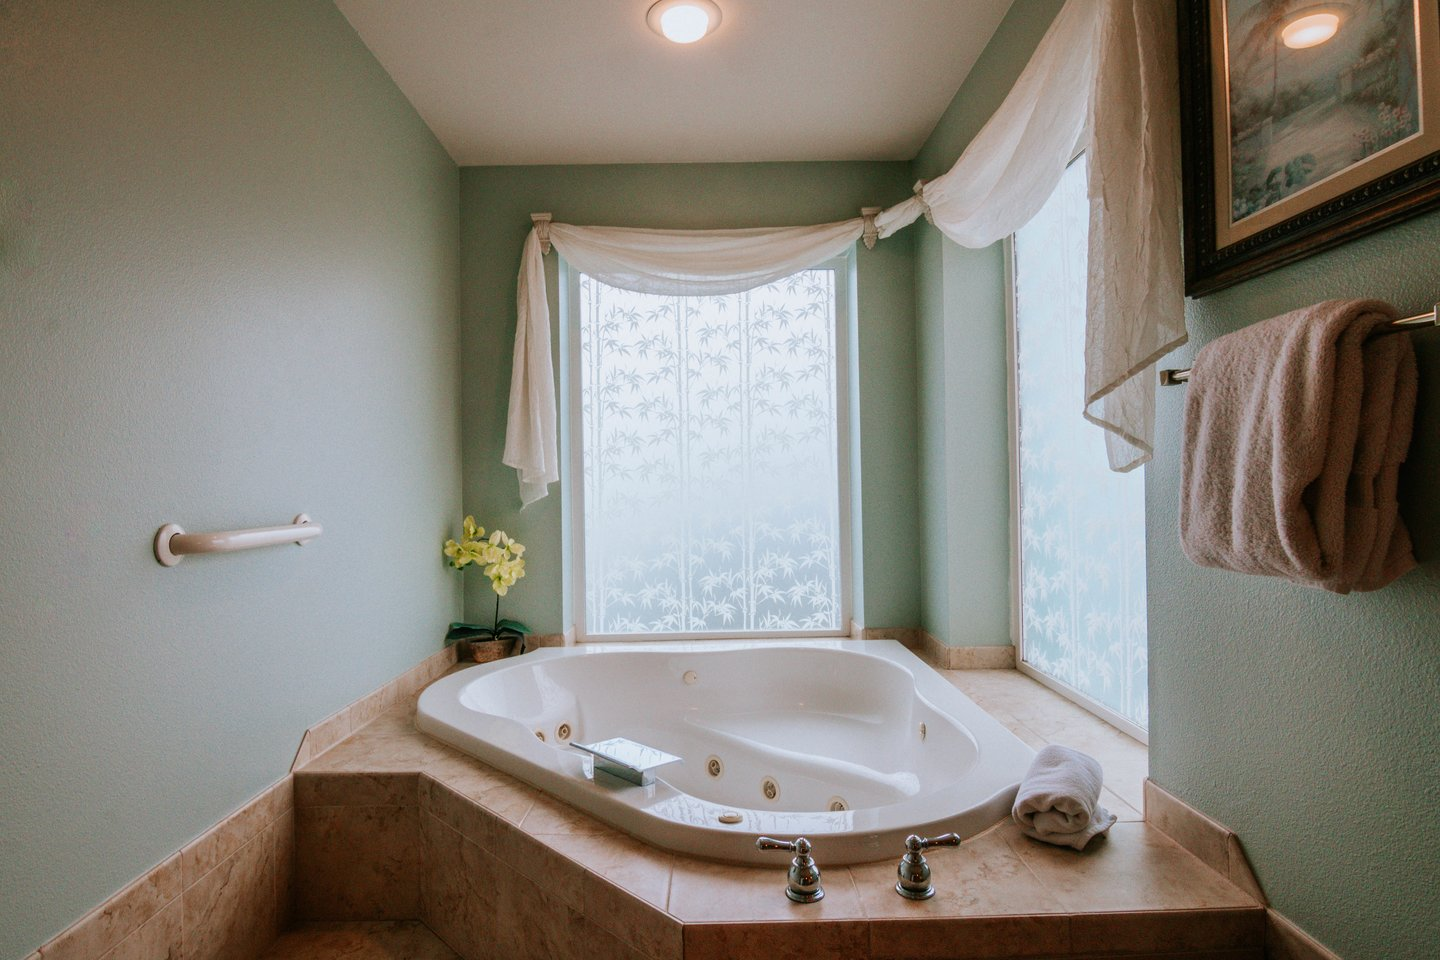 Immerse yourself for a soak in the large jacuzzi tub.